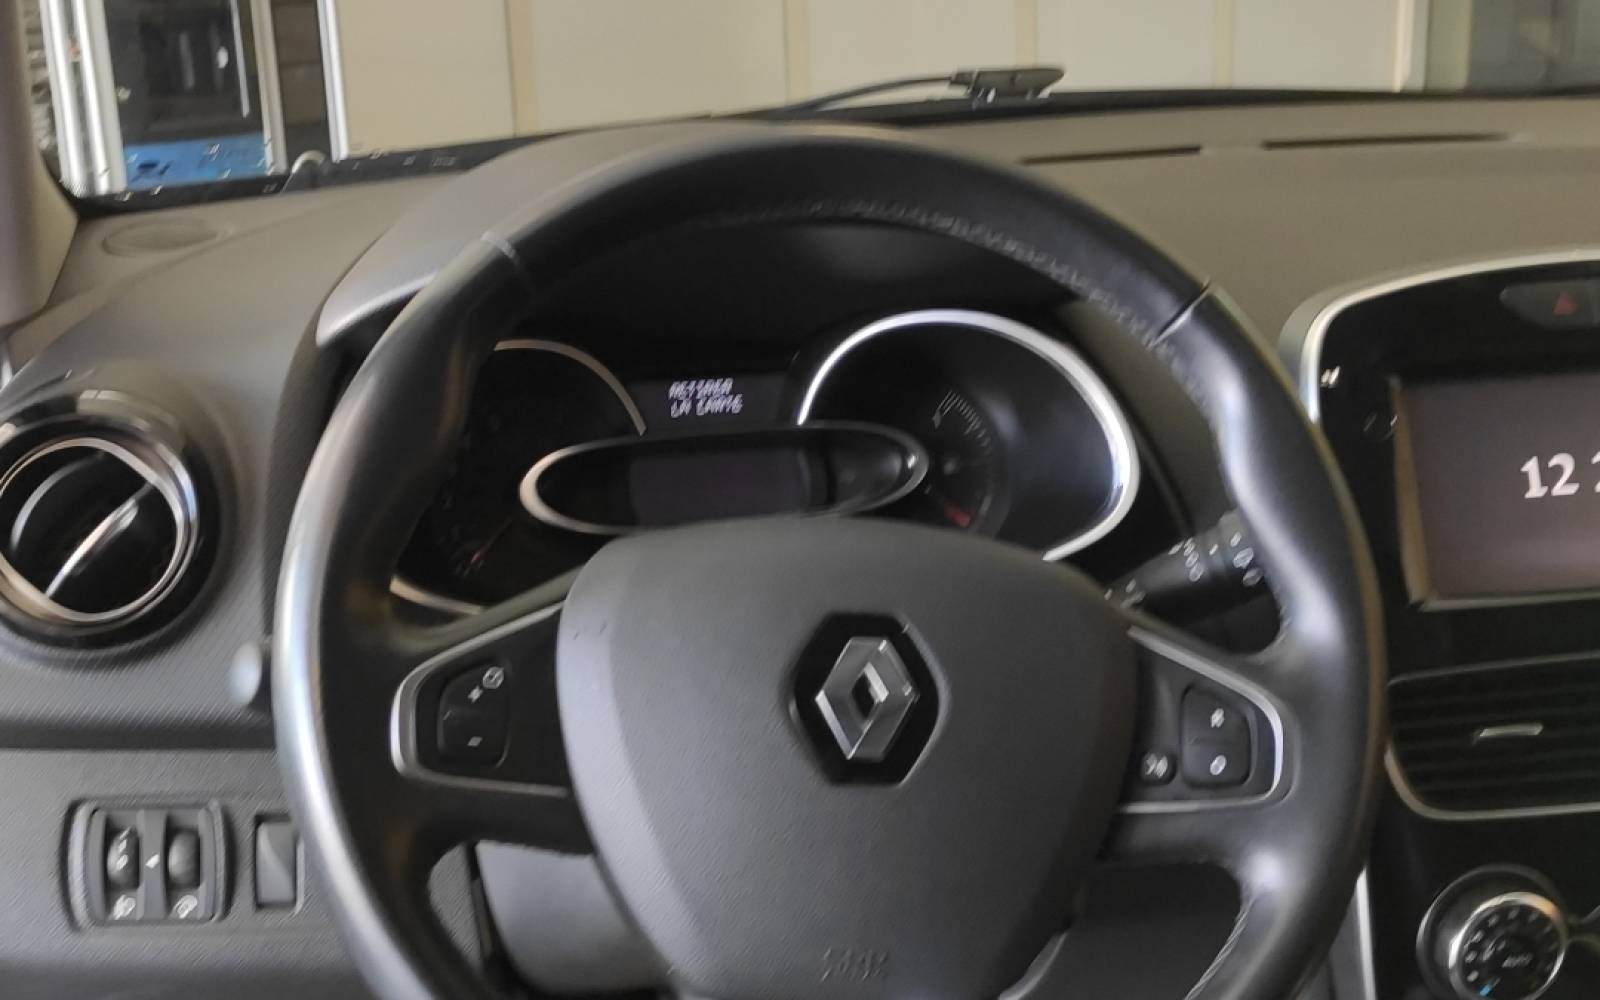 RENAULT Clio TCe 90 Energy - véhicule d'occasion - Site Internet Faurie - Sarda - 24750 - Trelissac - 13